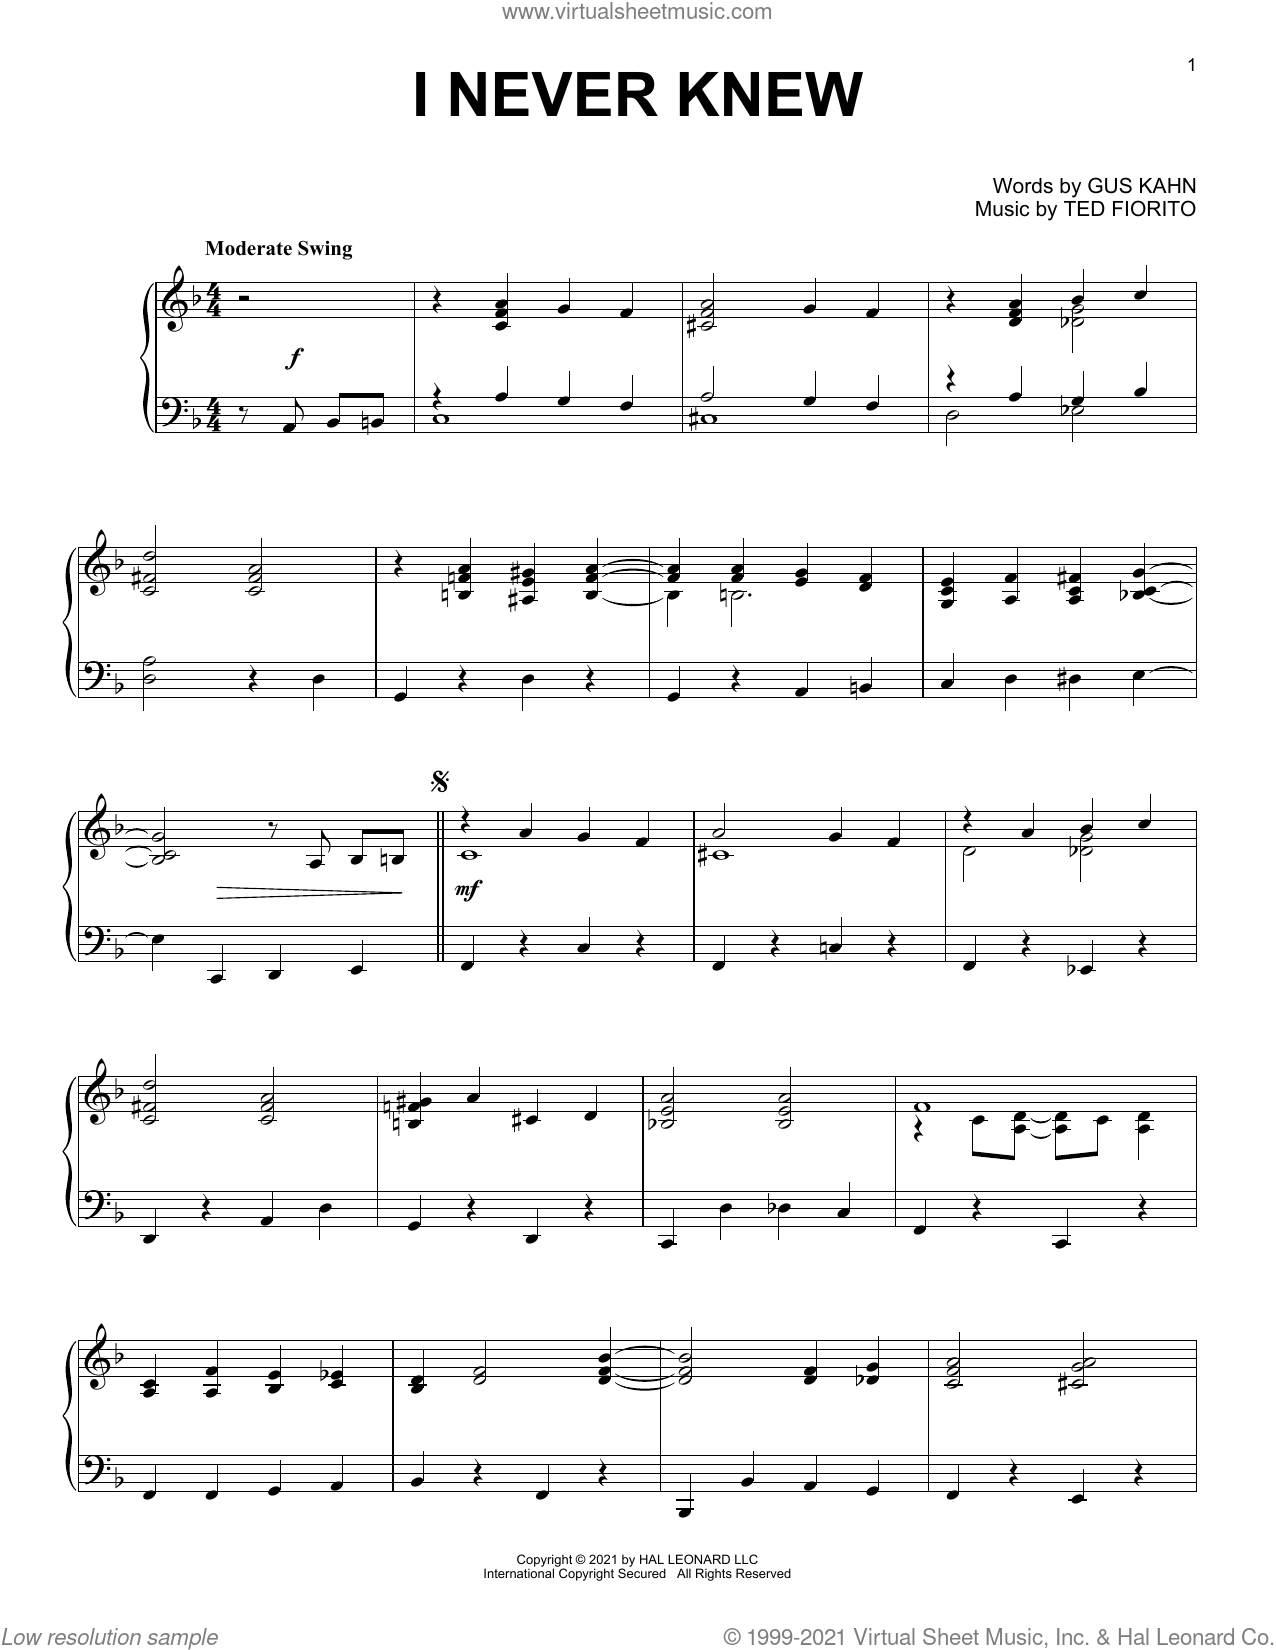 I Never Knew sheet music for piano solo by Gus Kahn and Ted Fiorito, Ted Fiorito and Gus Kahn, intermediate skill level